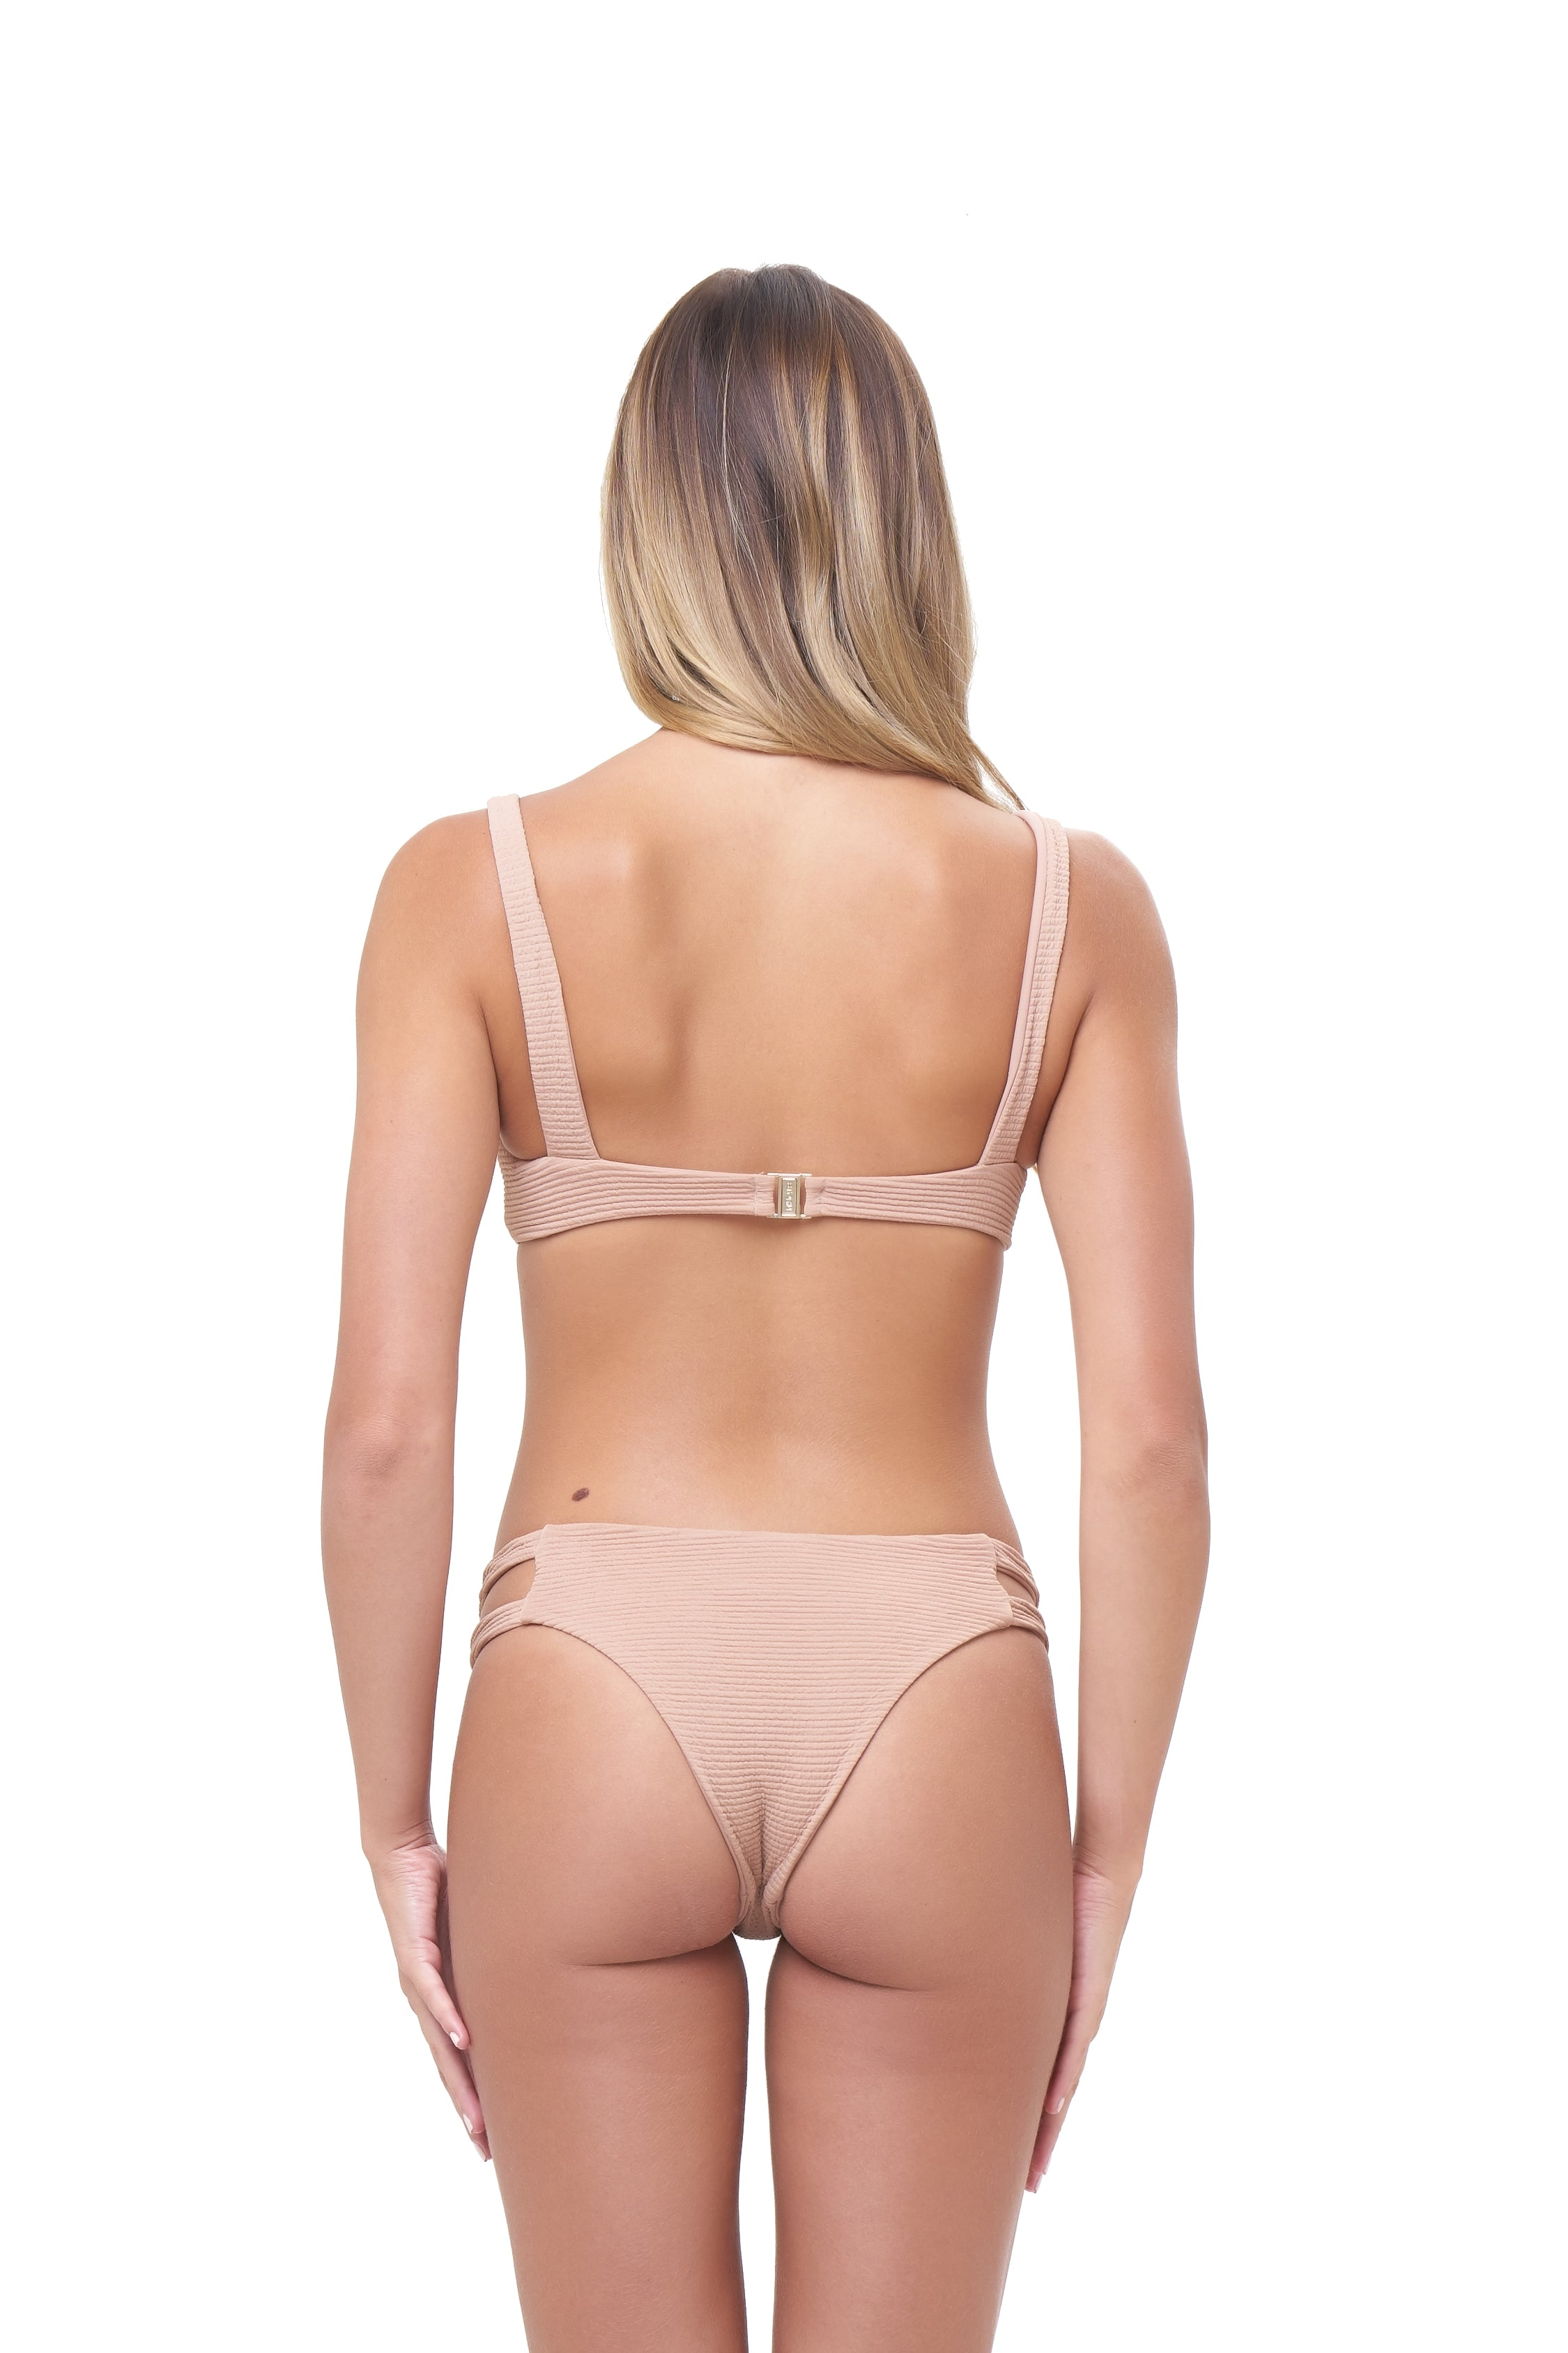 Storm Swimwear - Cottesloe - Split Brief in Storm Le Nuage Sable